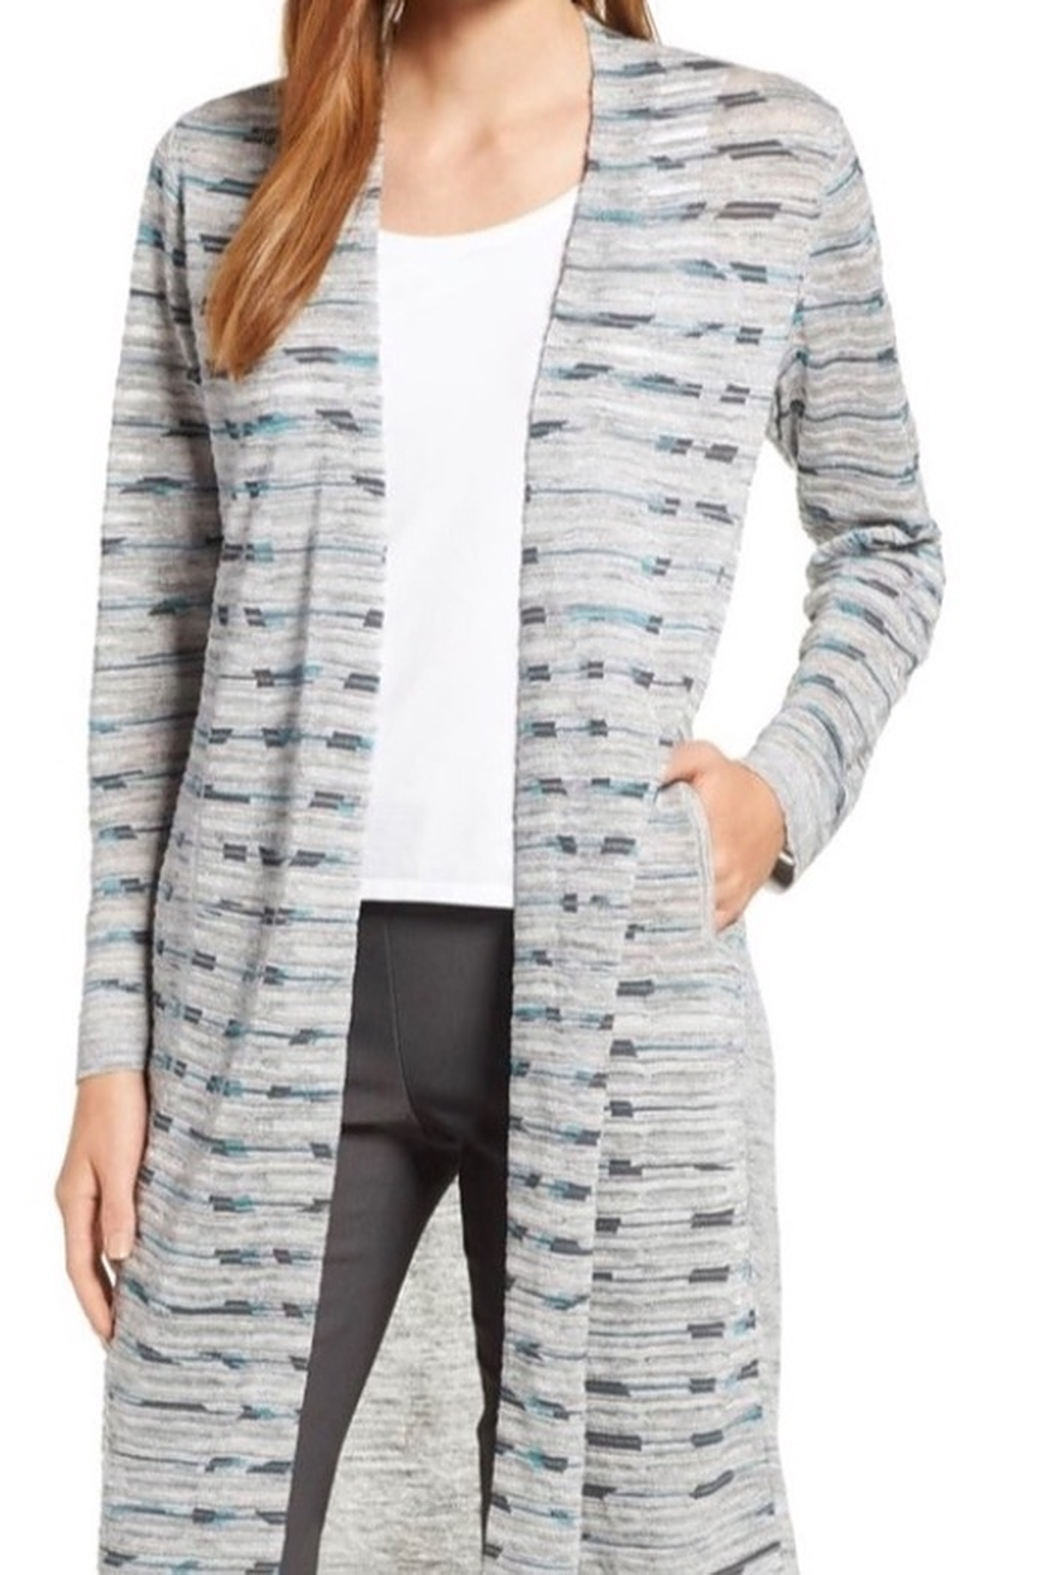 Nic&zoe Sweater duster long sleeve - Front Cropped Image